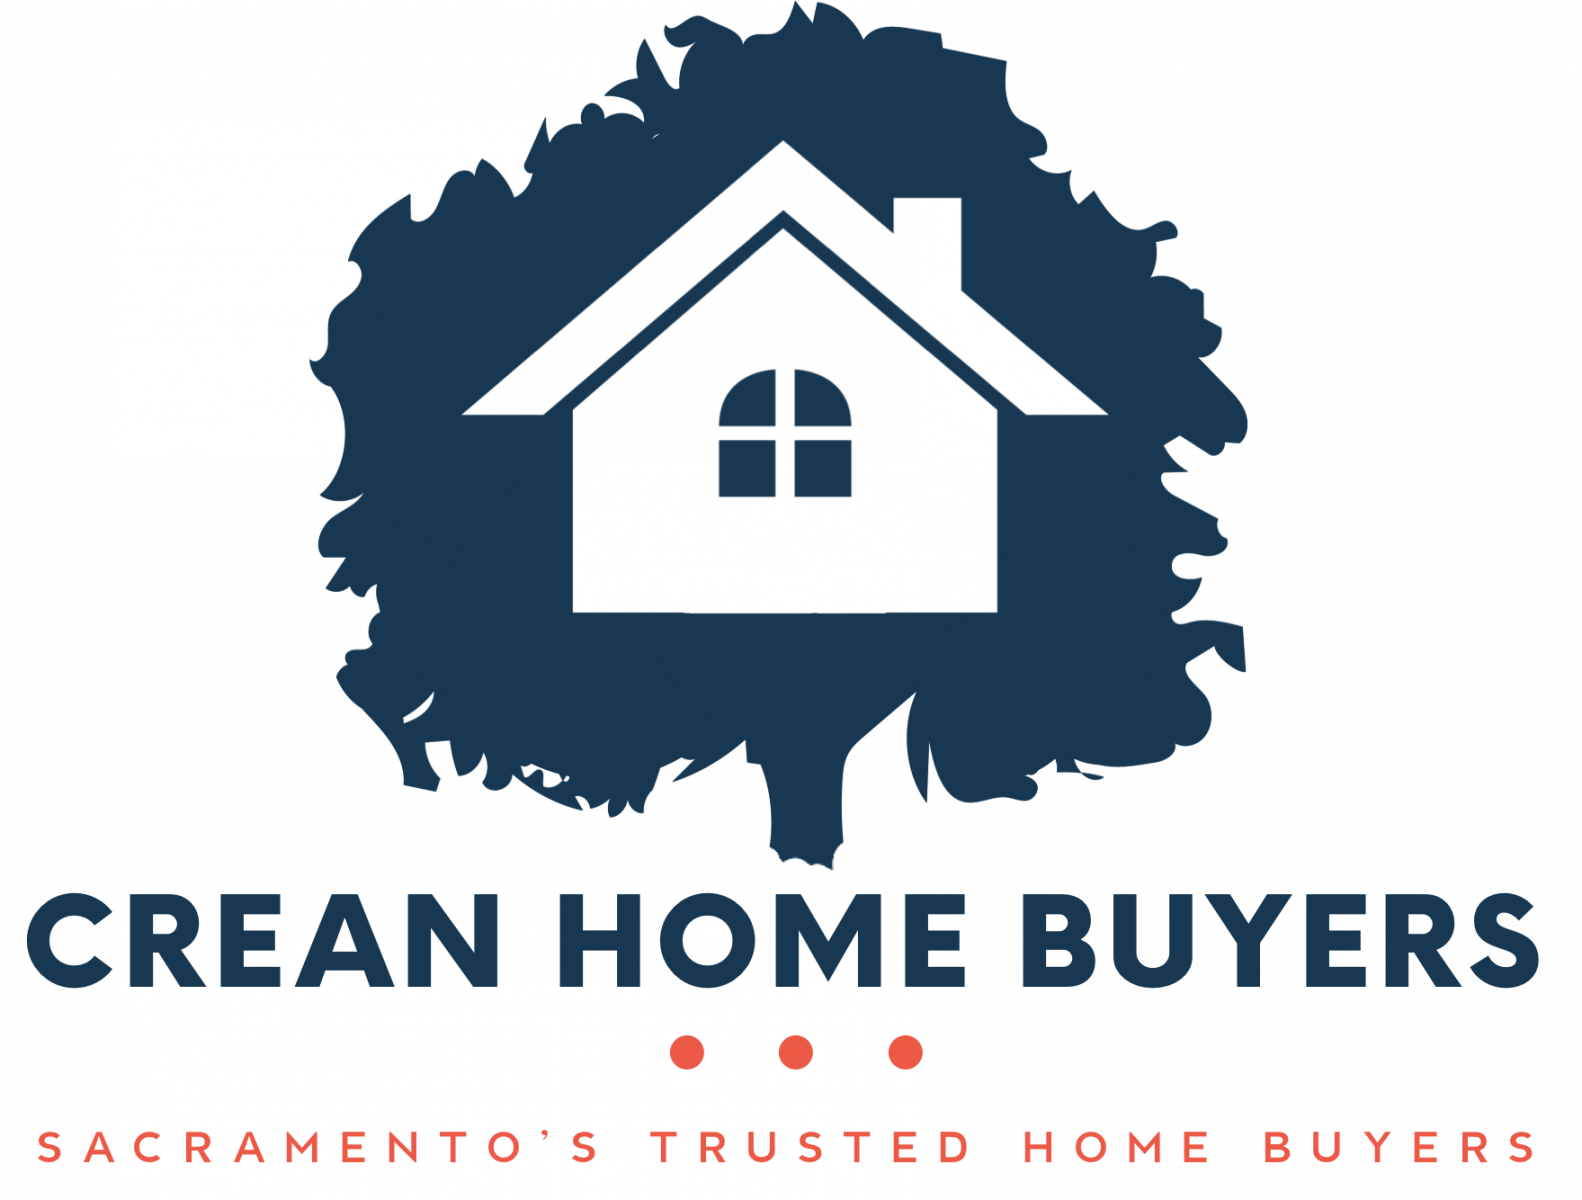 Crean House Buyers logo